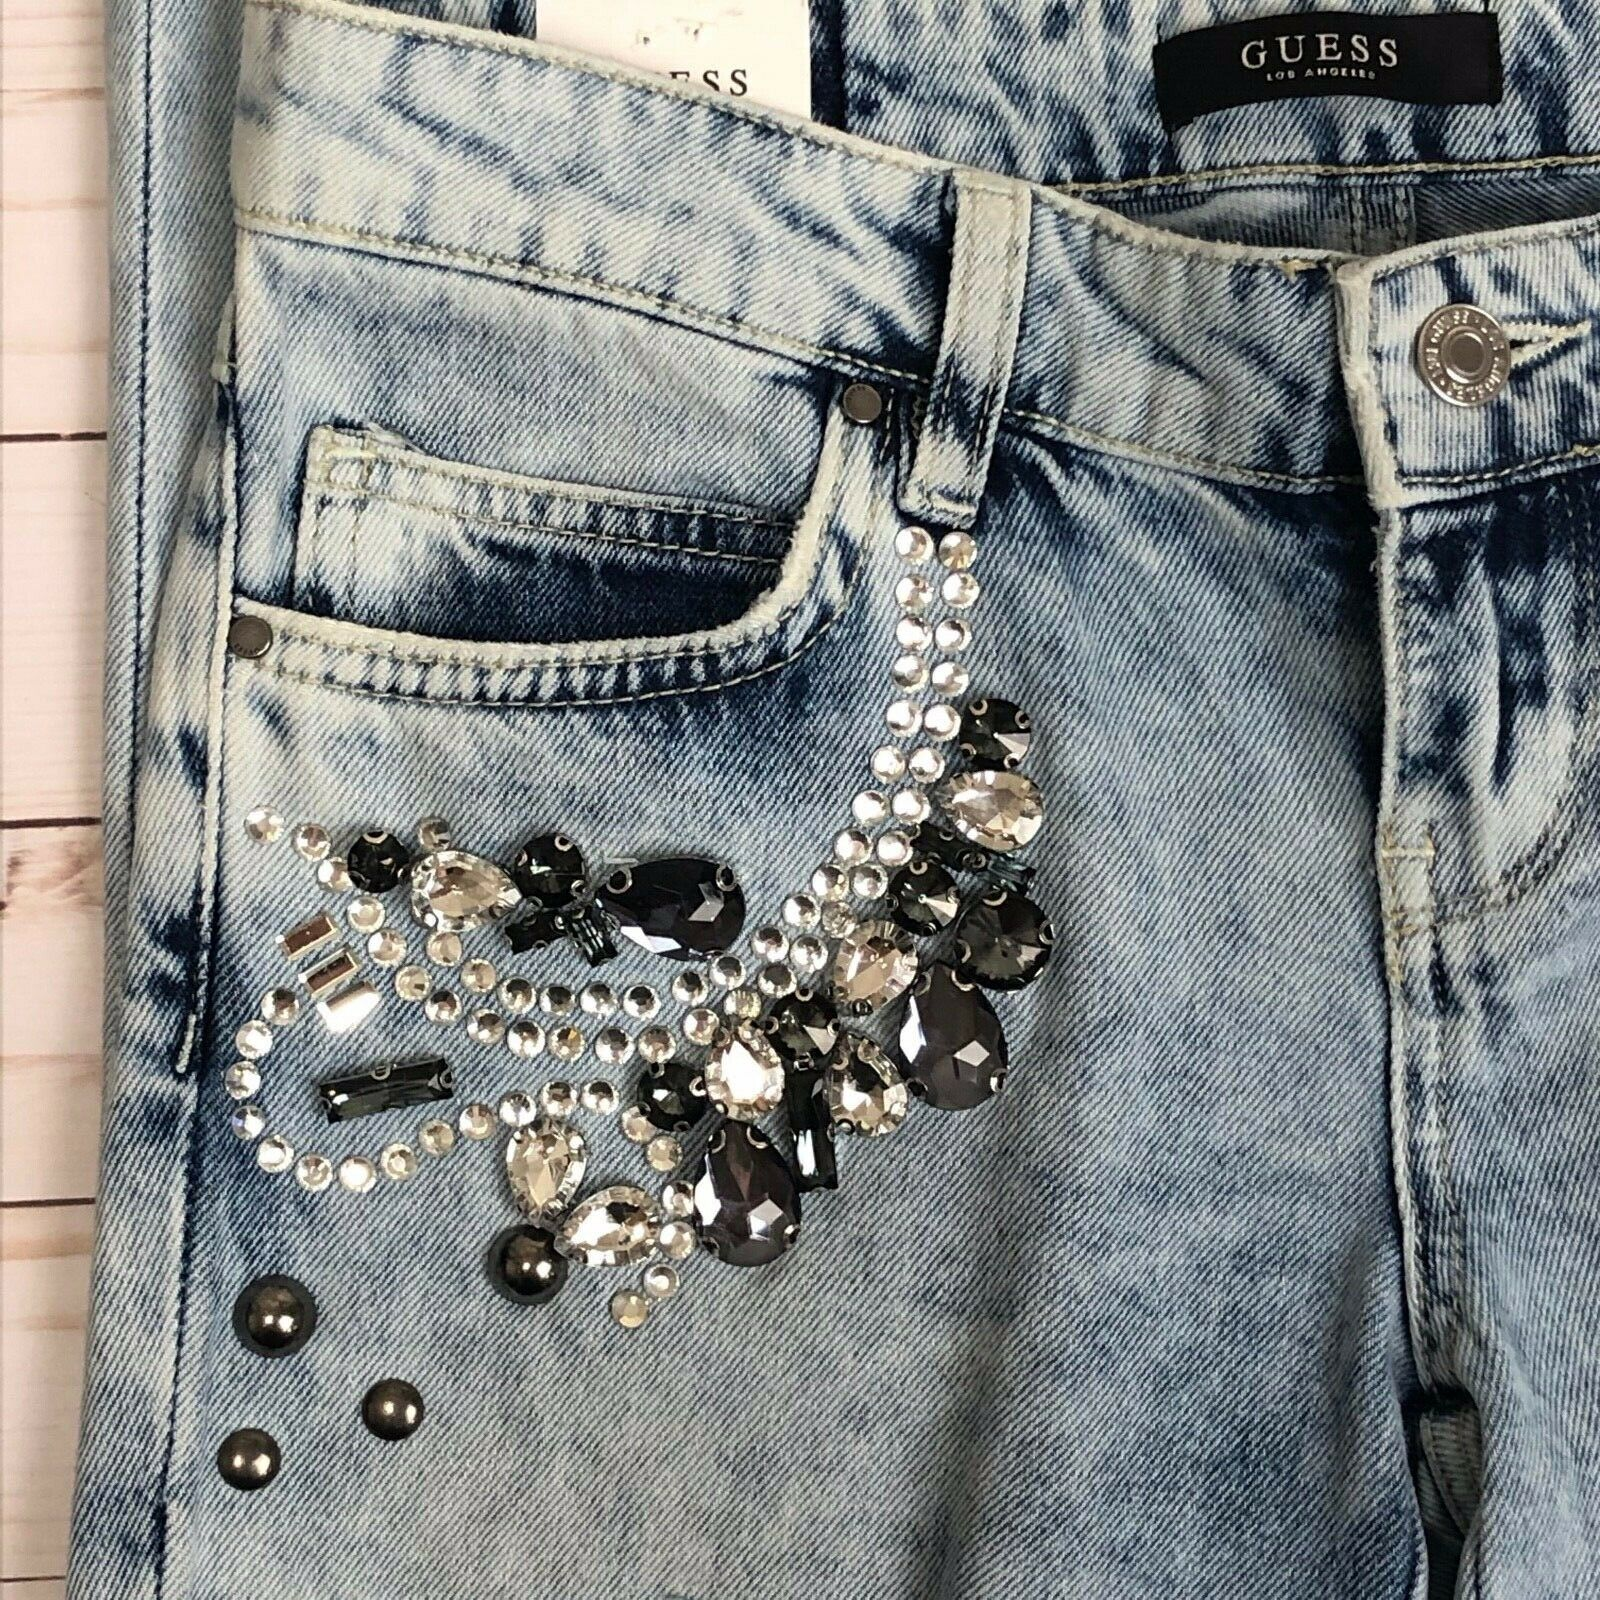 Details about NWT $128: Guess Marilyn 3 Zip Ripped Skinny Jeans wRhinestones in Fairy Bleach